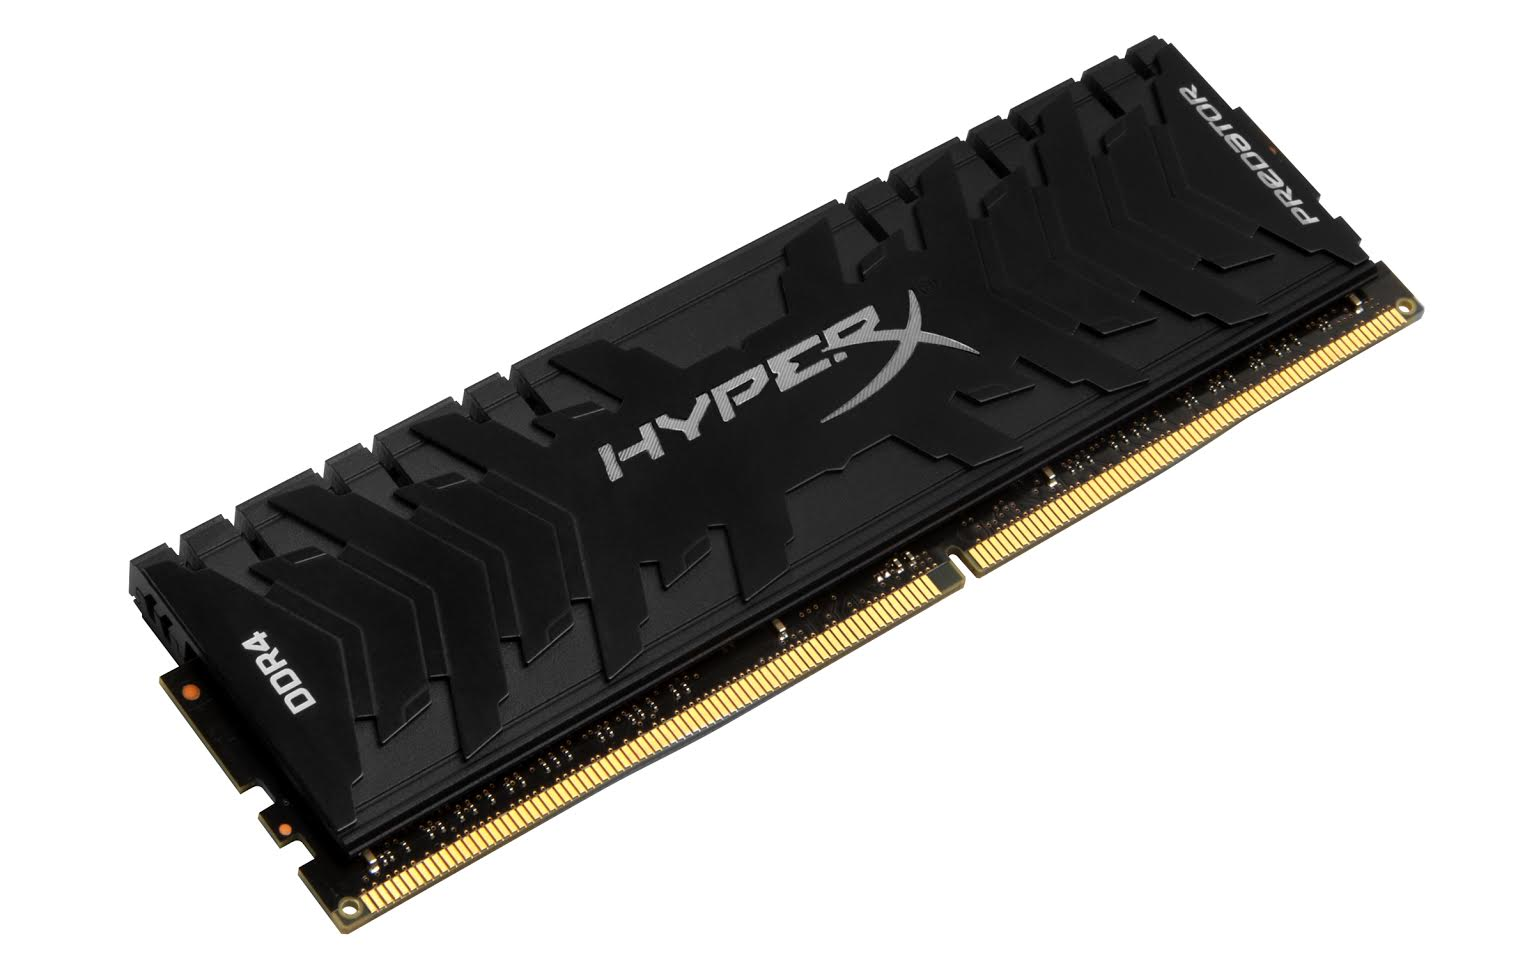 HyperX Sets DDR4 Overclocking World Record at 5902MHz 5